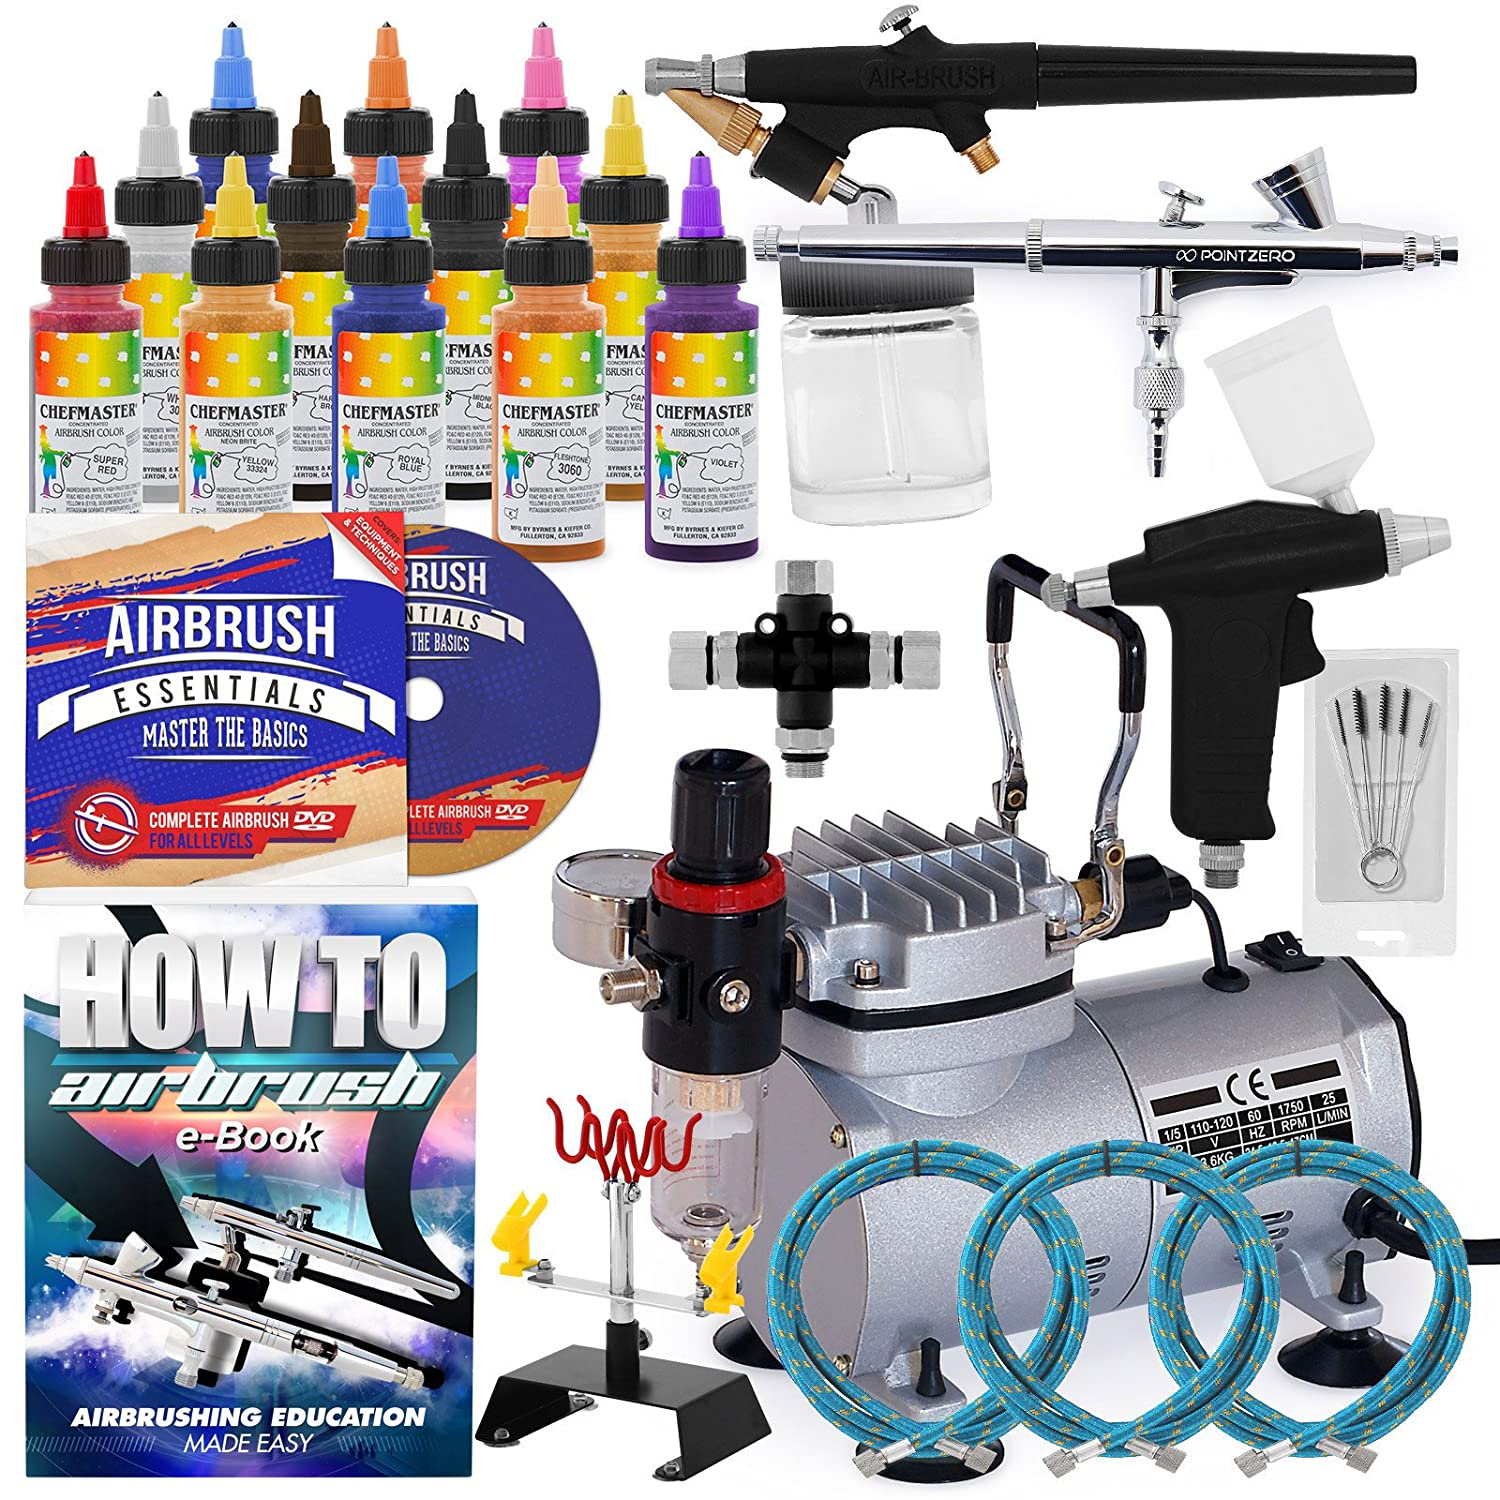 PointZero Cake Airbrush Decorating Kit - 3 Airbrushes, Stand, Compressor, and 12 Chefmaster Colors PointZero Airbrush